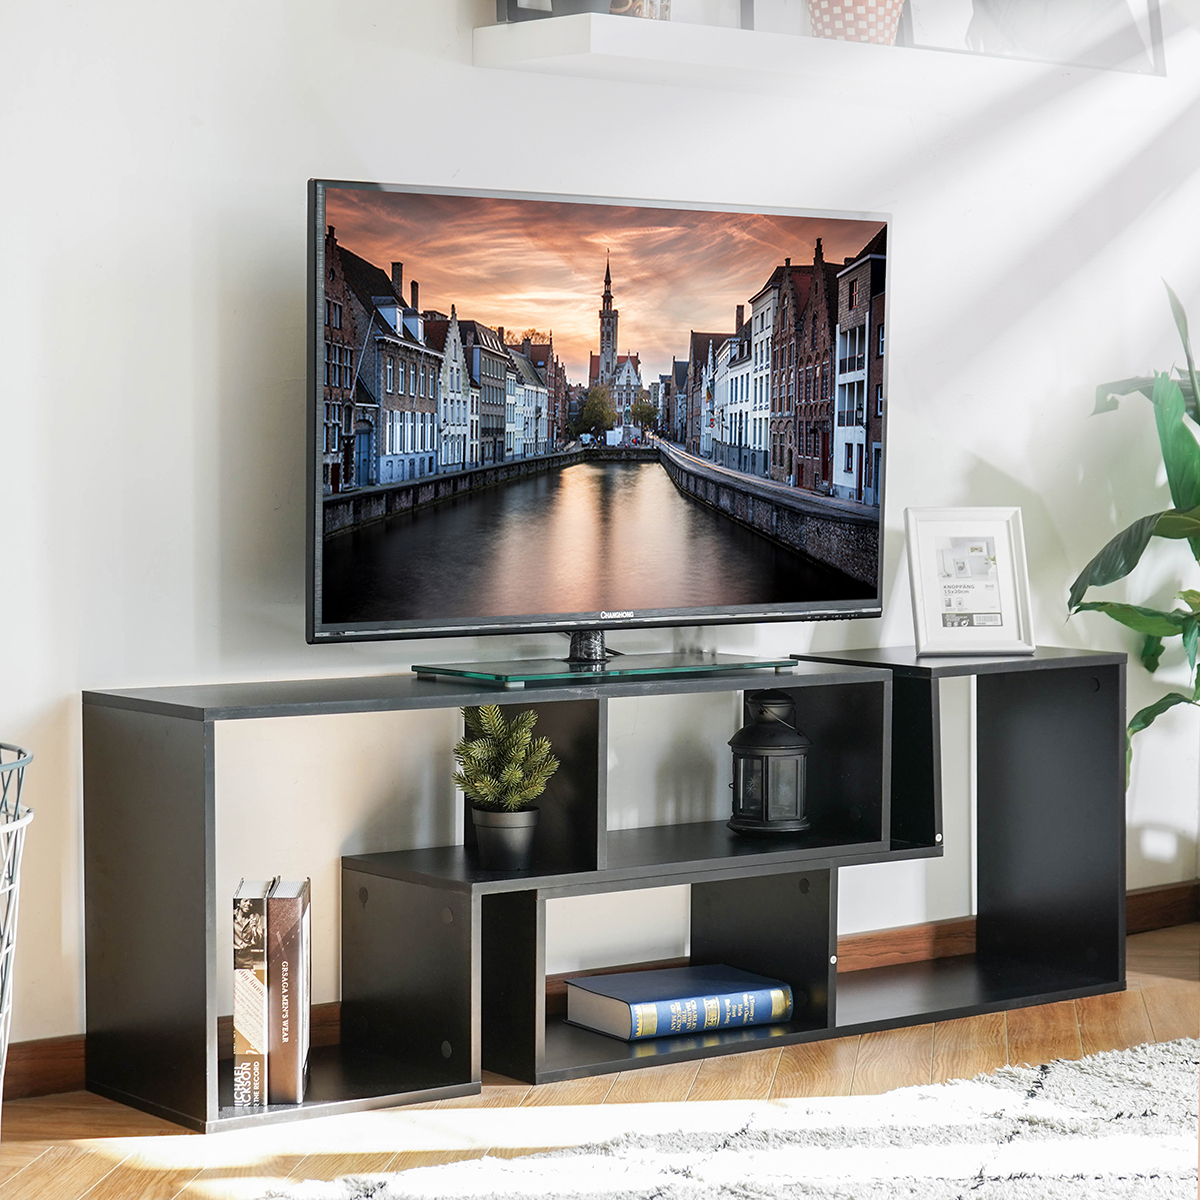 43'' – 86'' Tv Convertible Tv Stand And Bookcase, Modern With Regard To Baby Proof Contemporary Tv Cabinets (View 4 of 15)